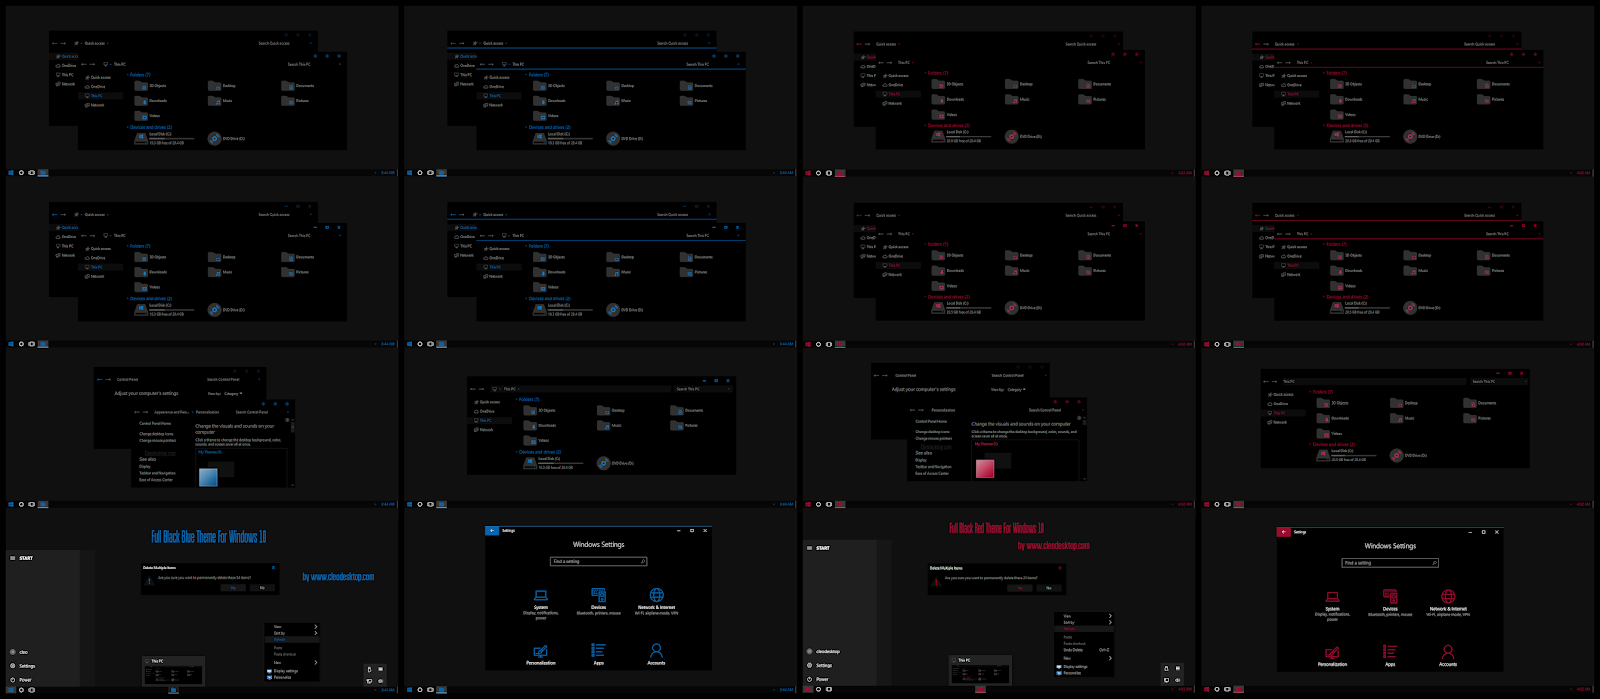 Full Black Blue and Red ComboPack Theme Windows 10 1909